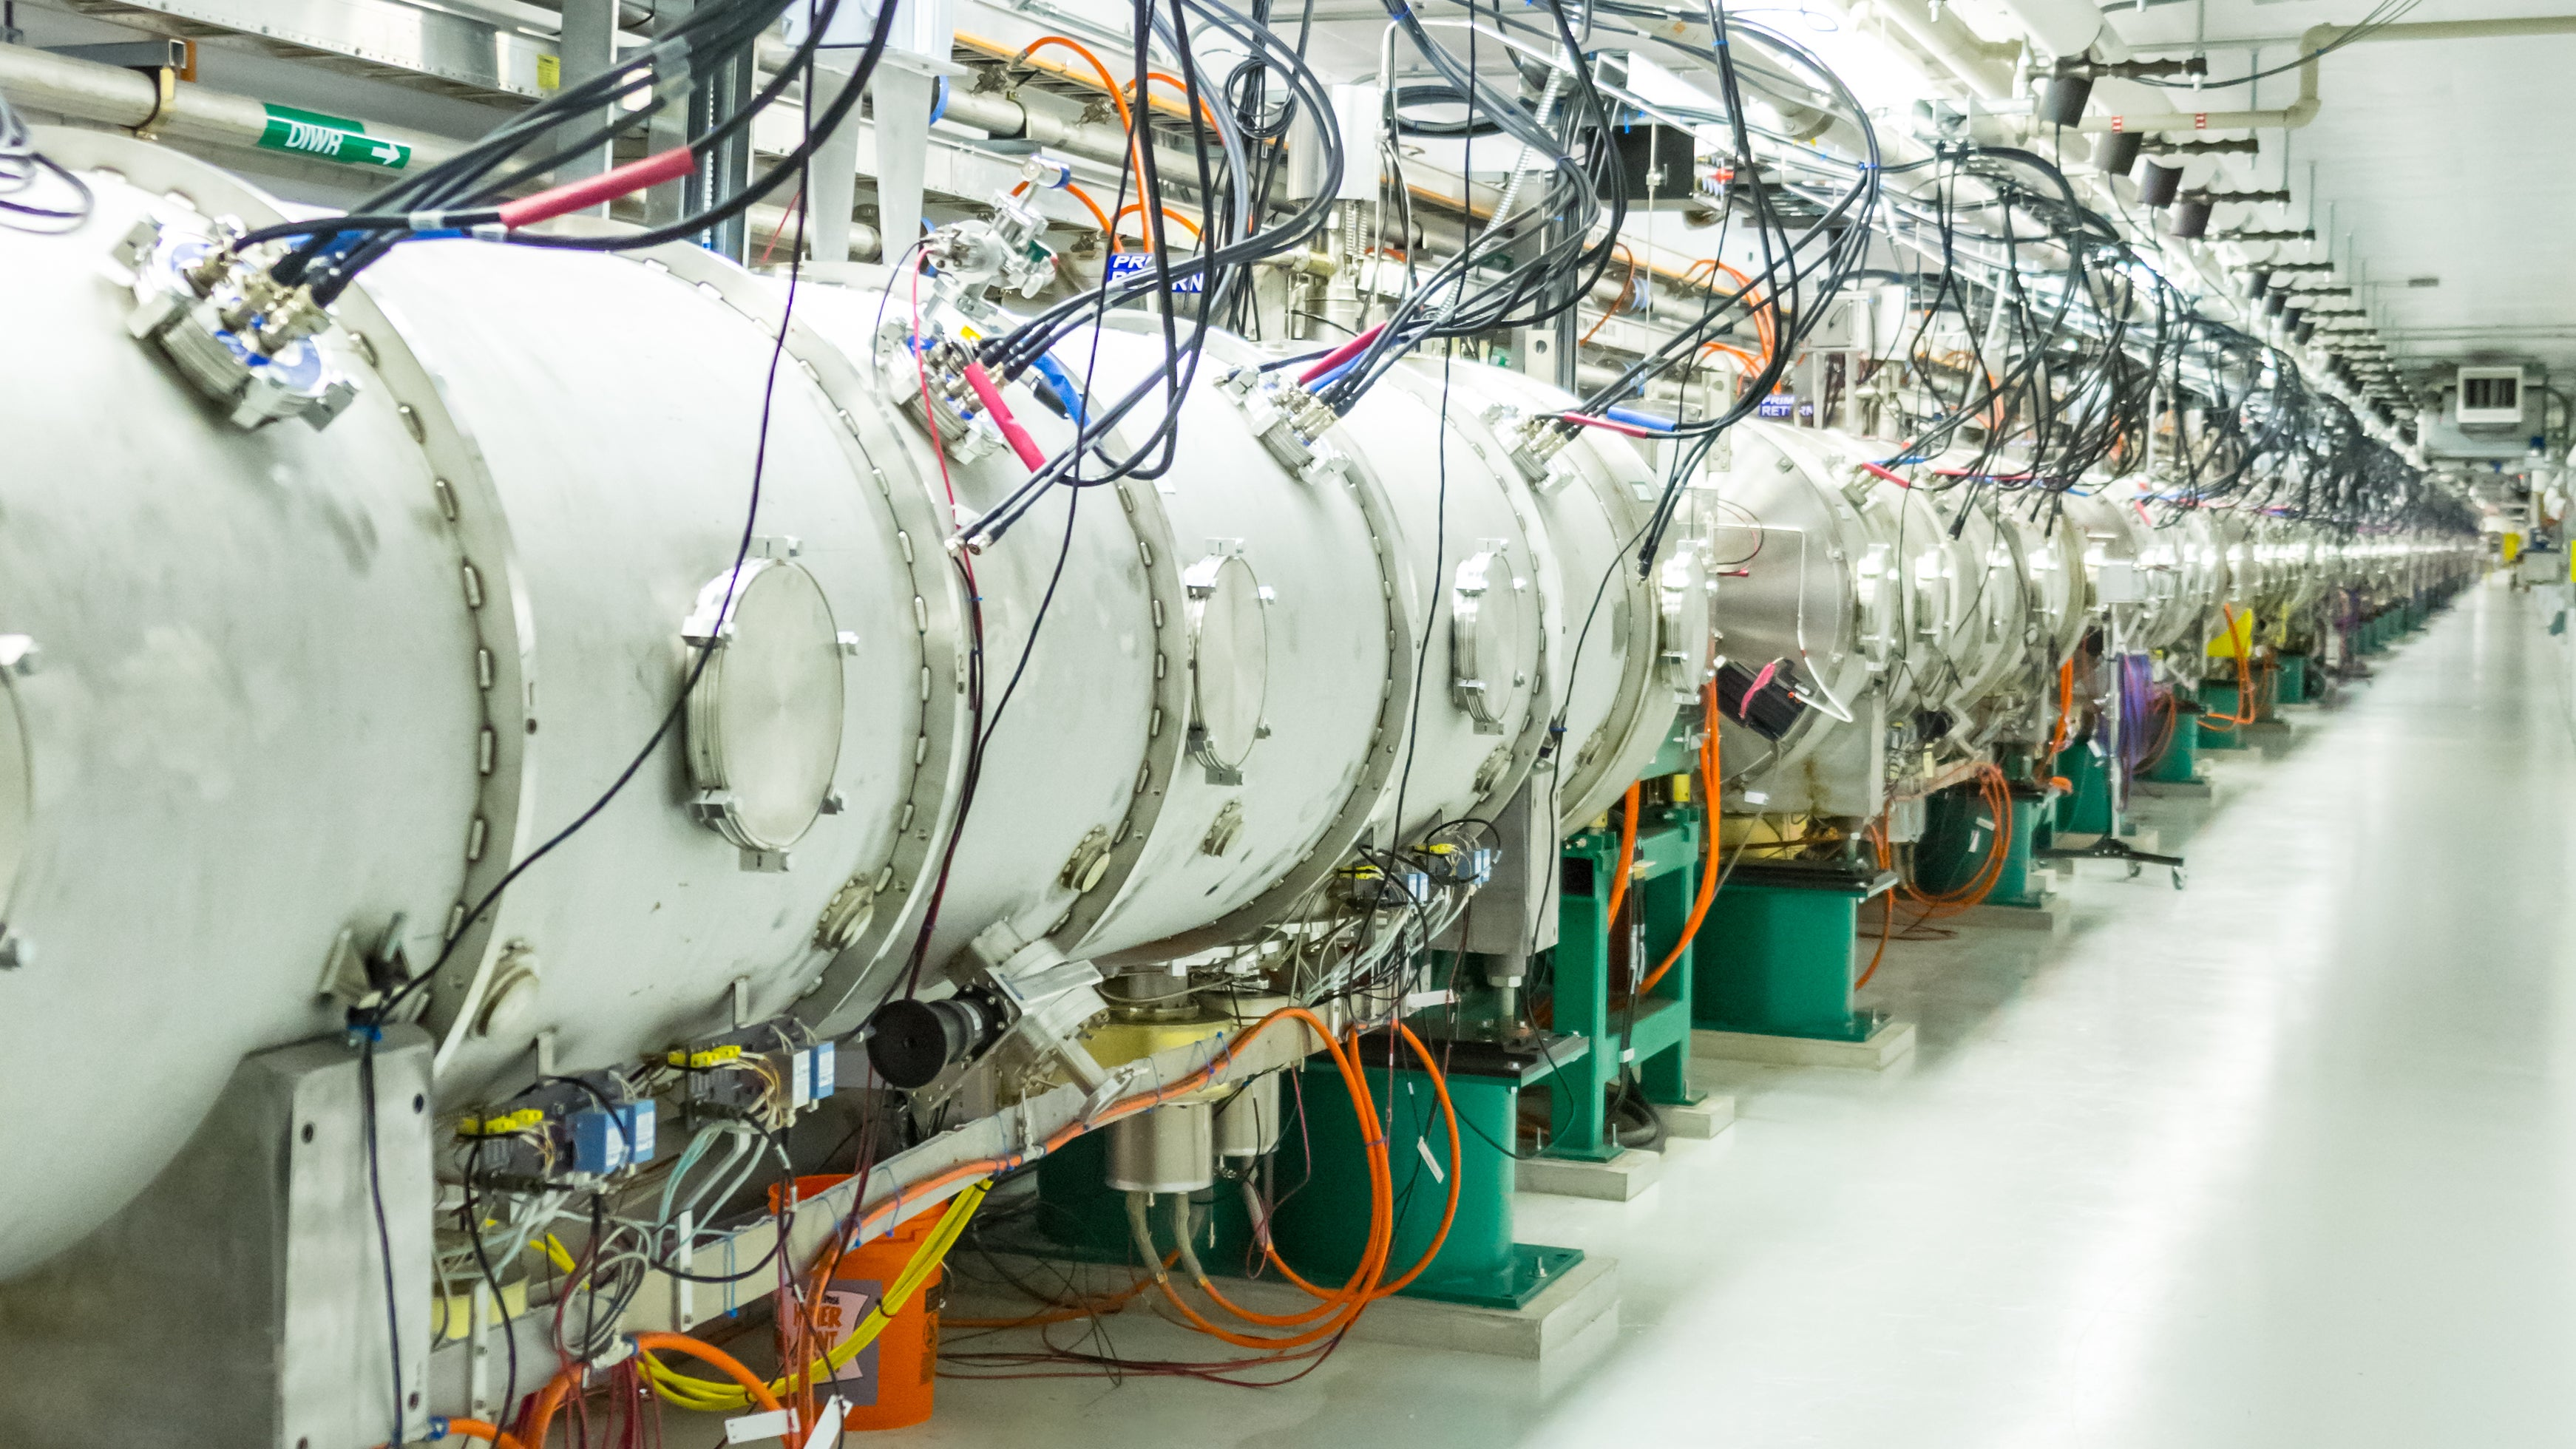 Physicists Prove 40-Year-Old Prediction With Incredible Neutrino Observation